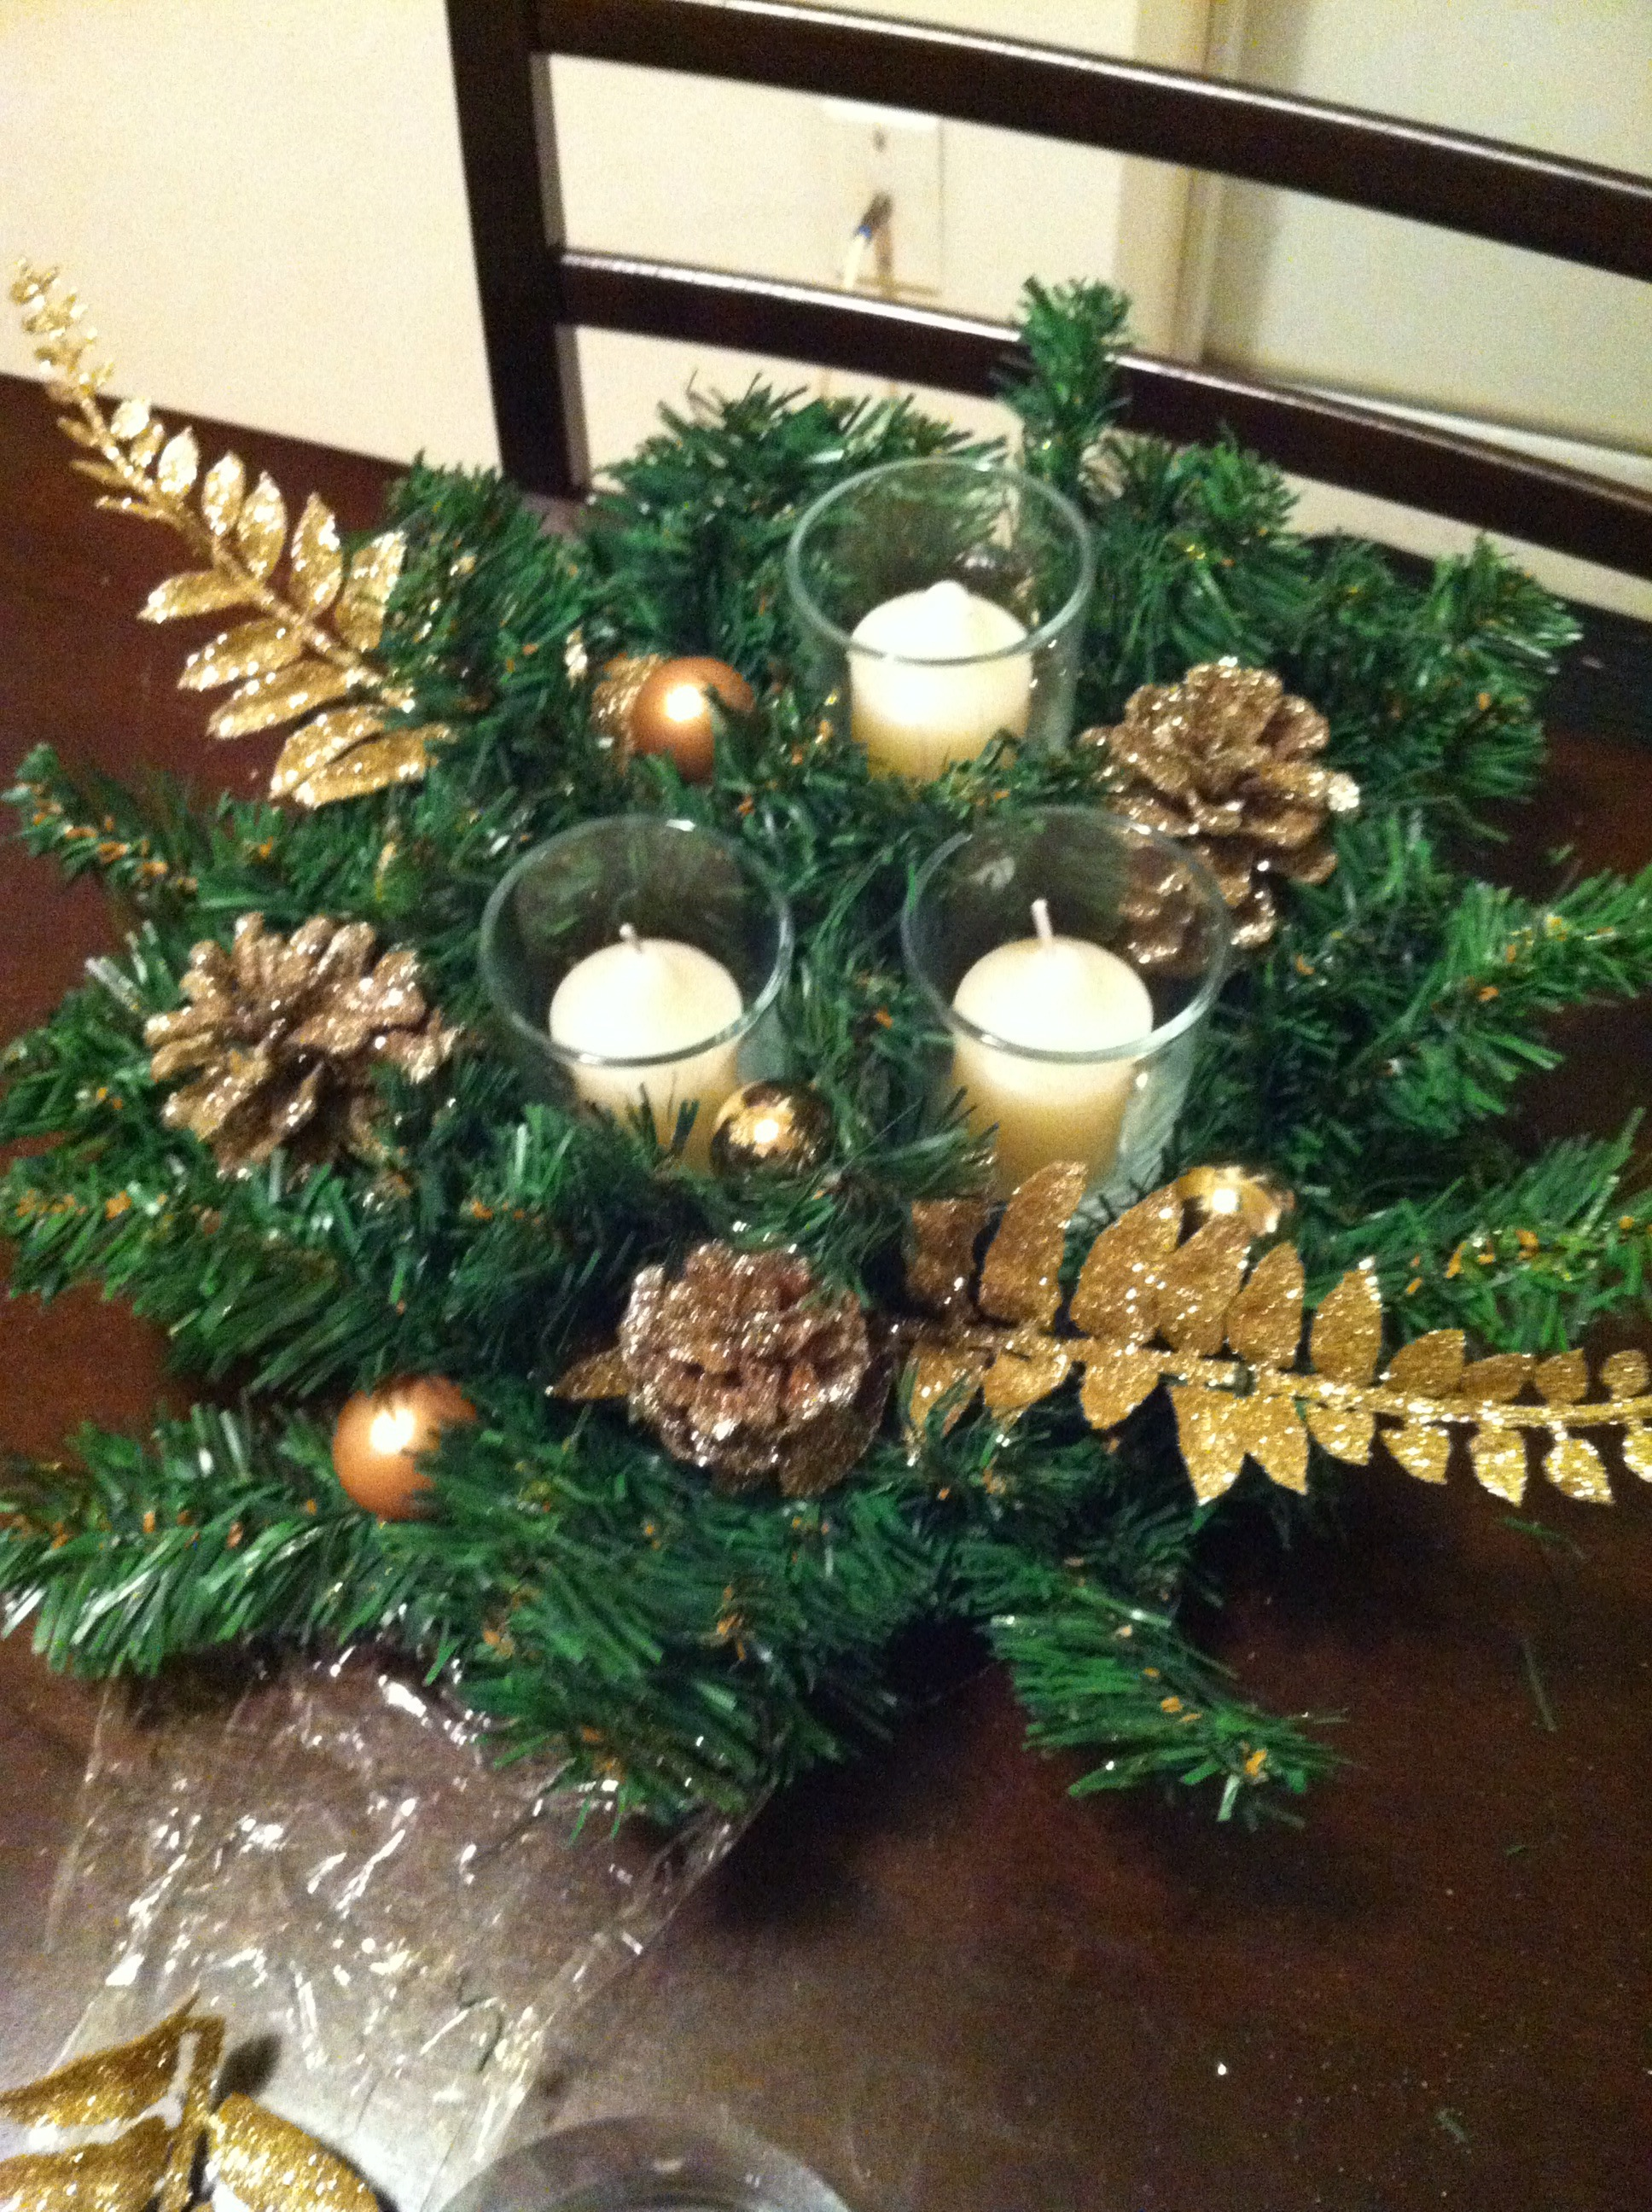 Festive Holiday Coffee Table Centerpiece